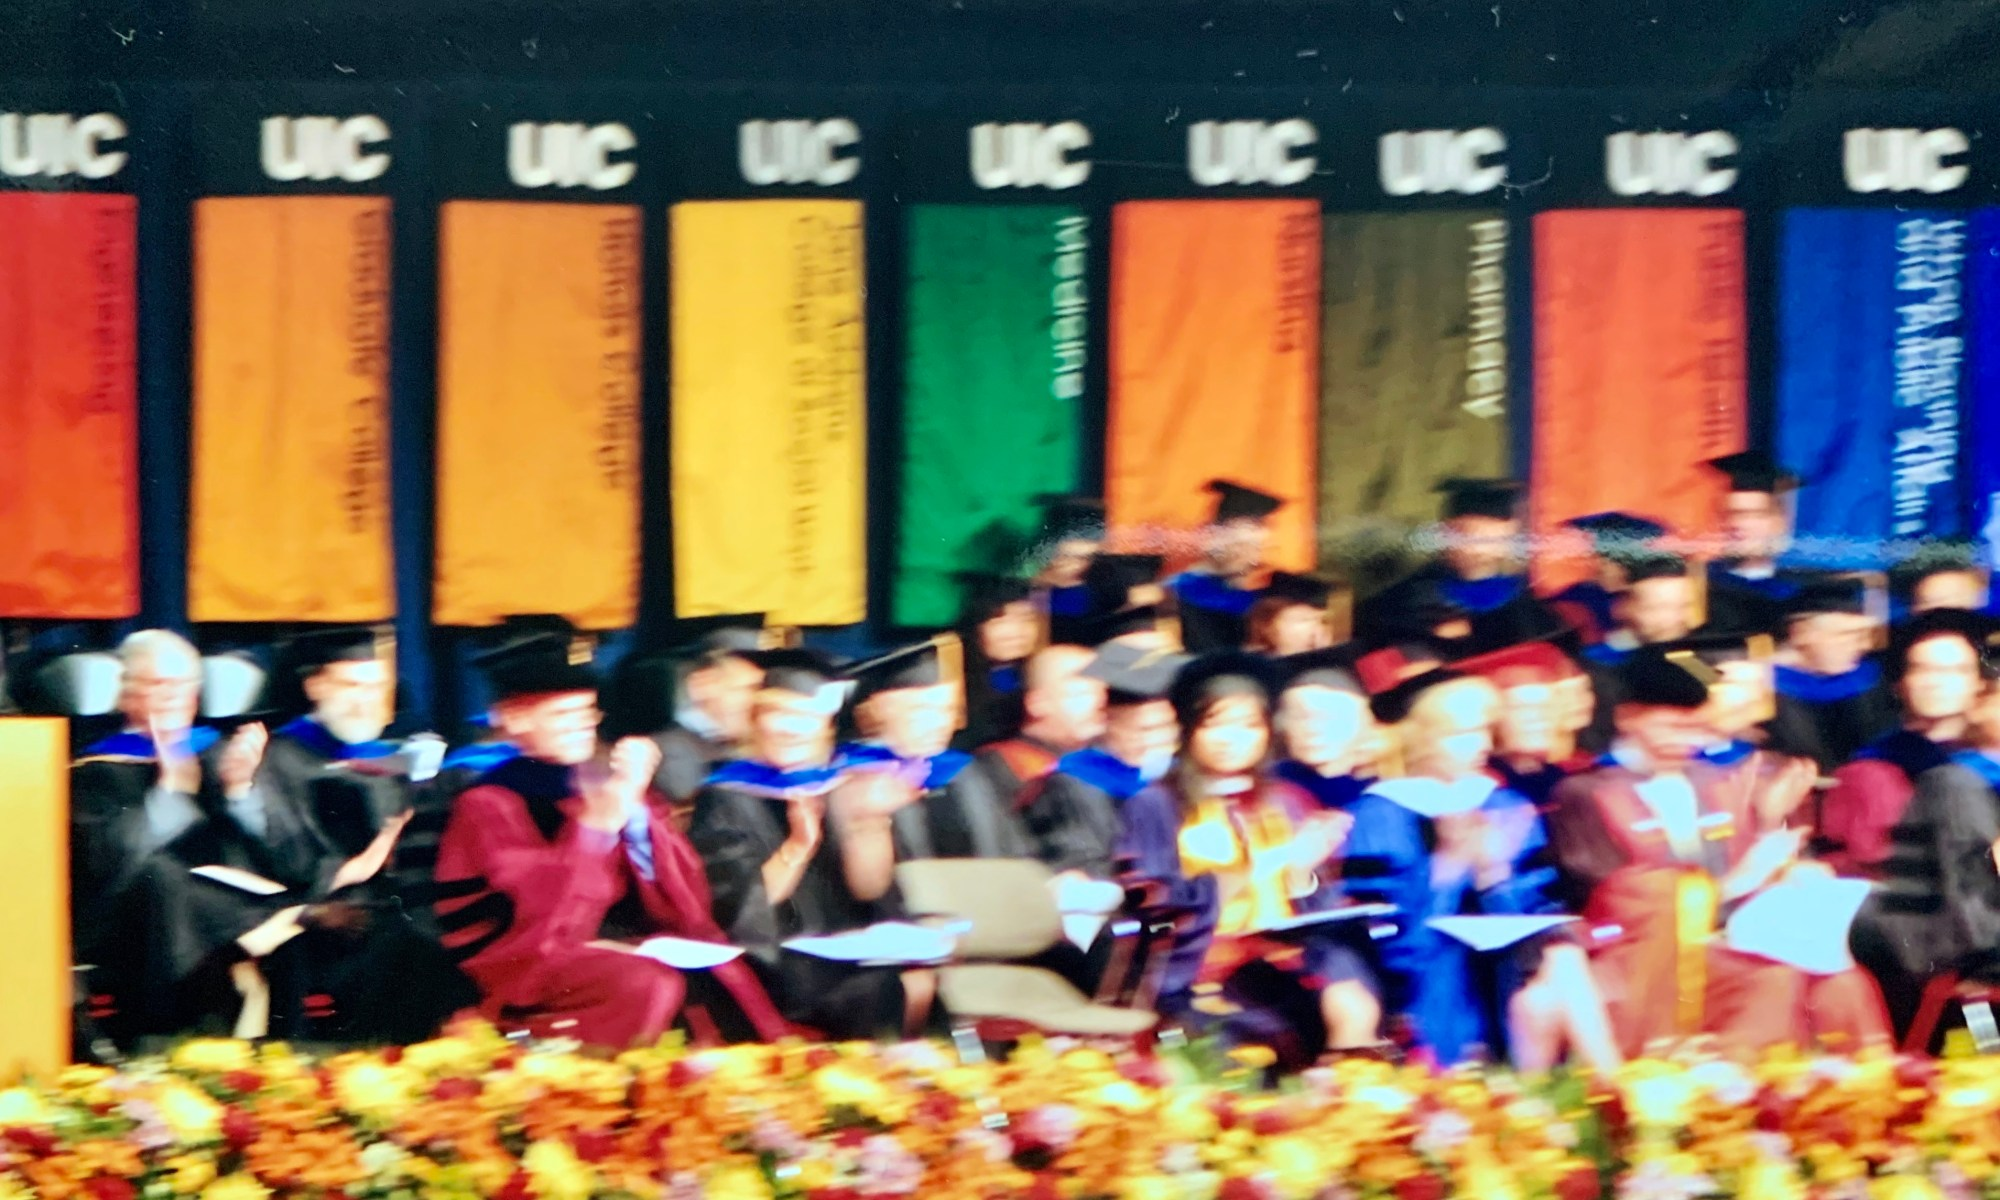 Blurry image of a commencement ceremony, with colorful banners